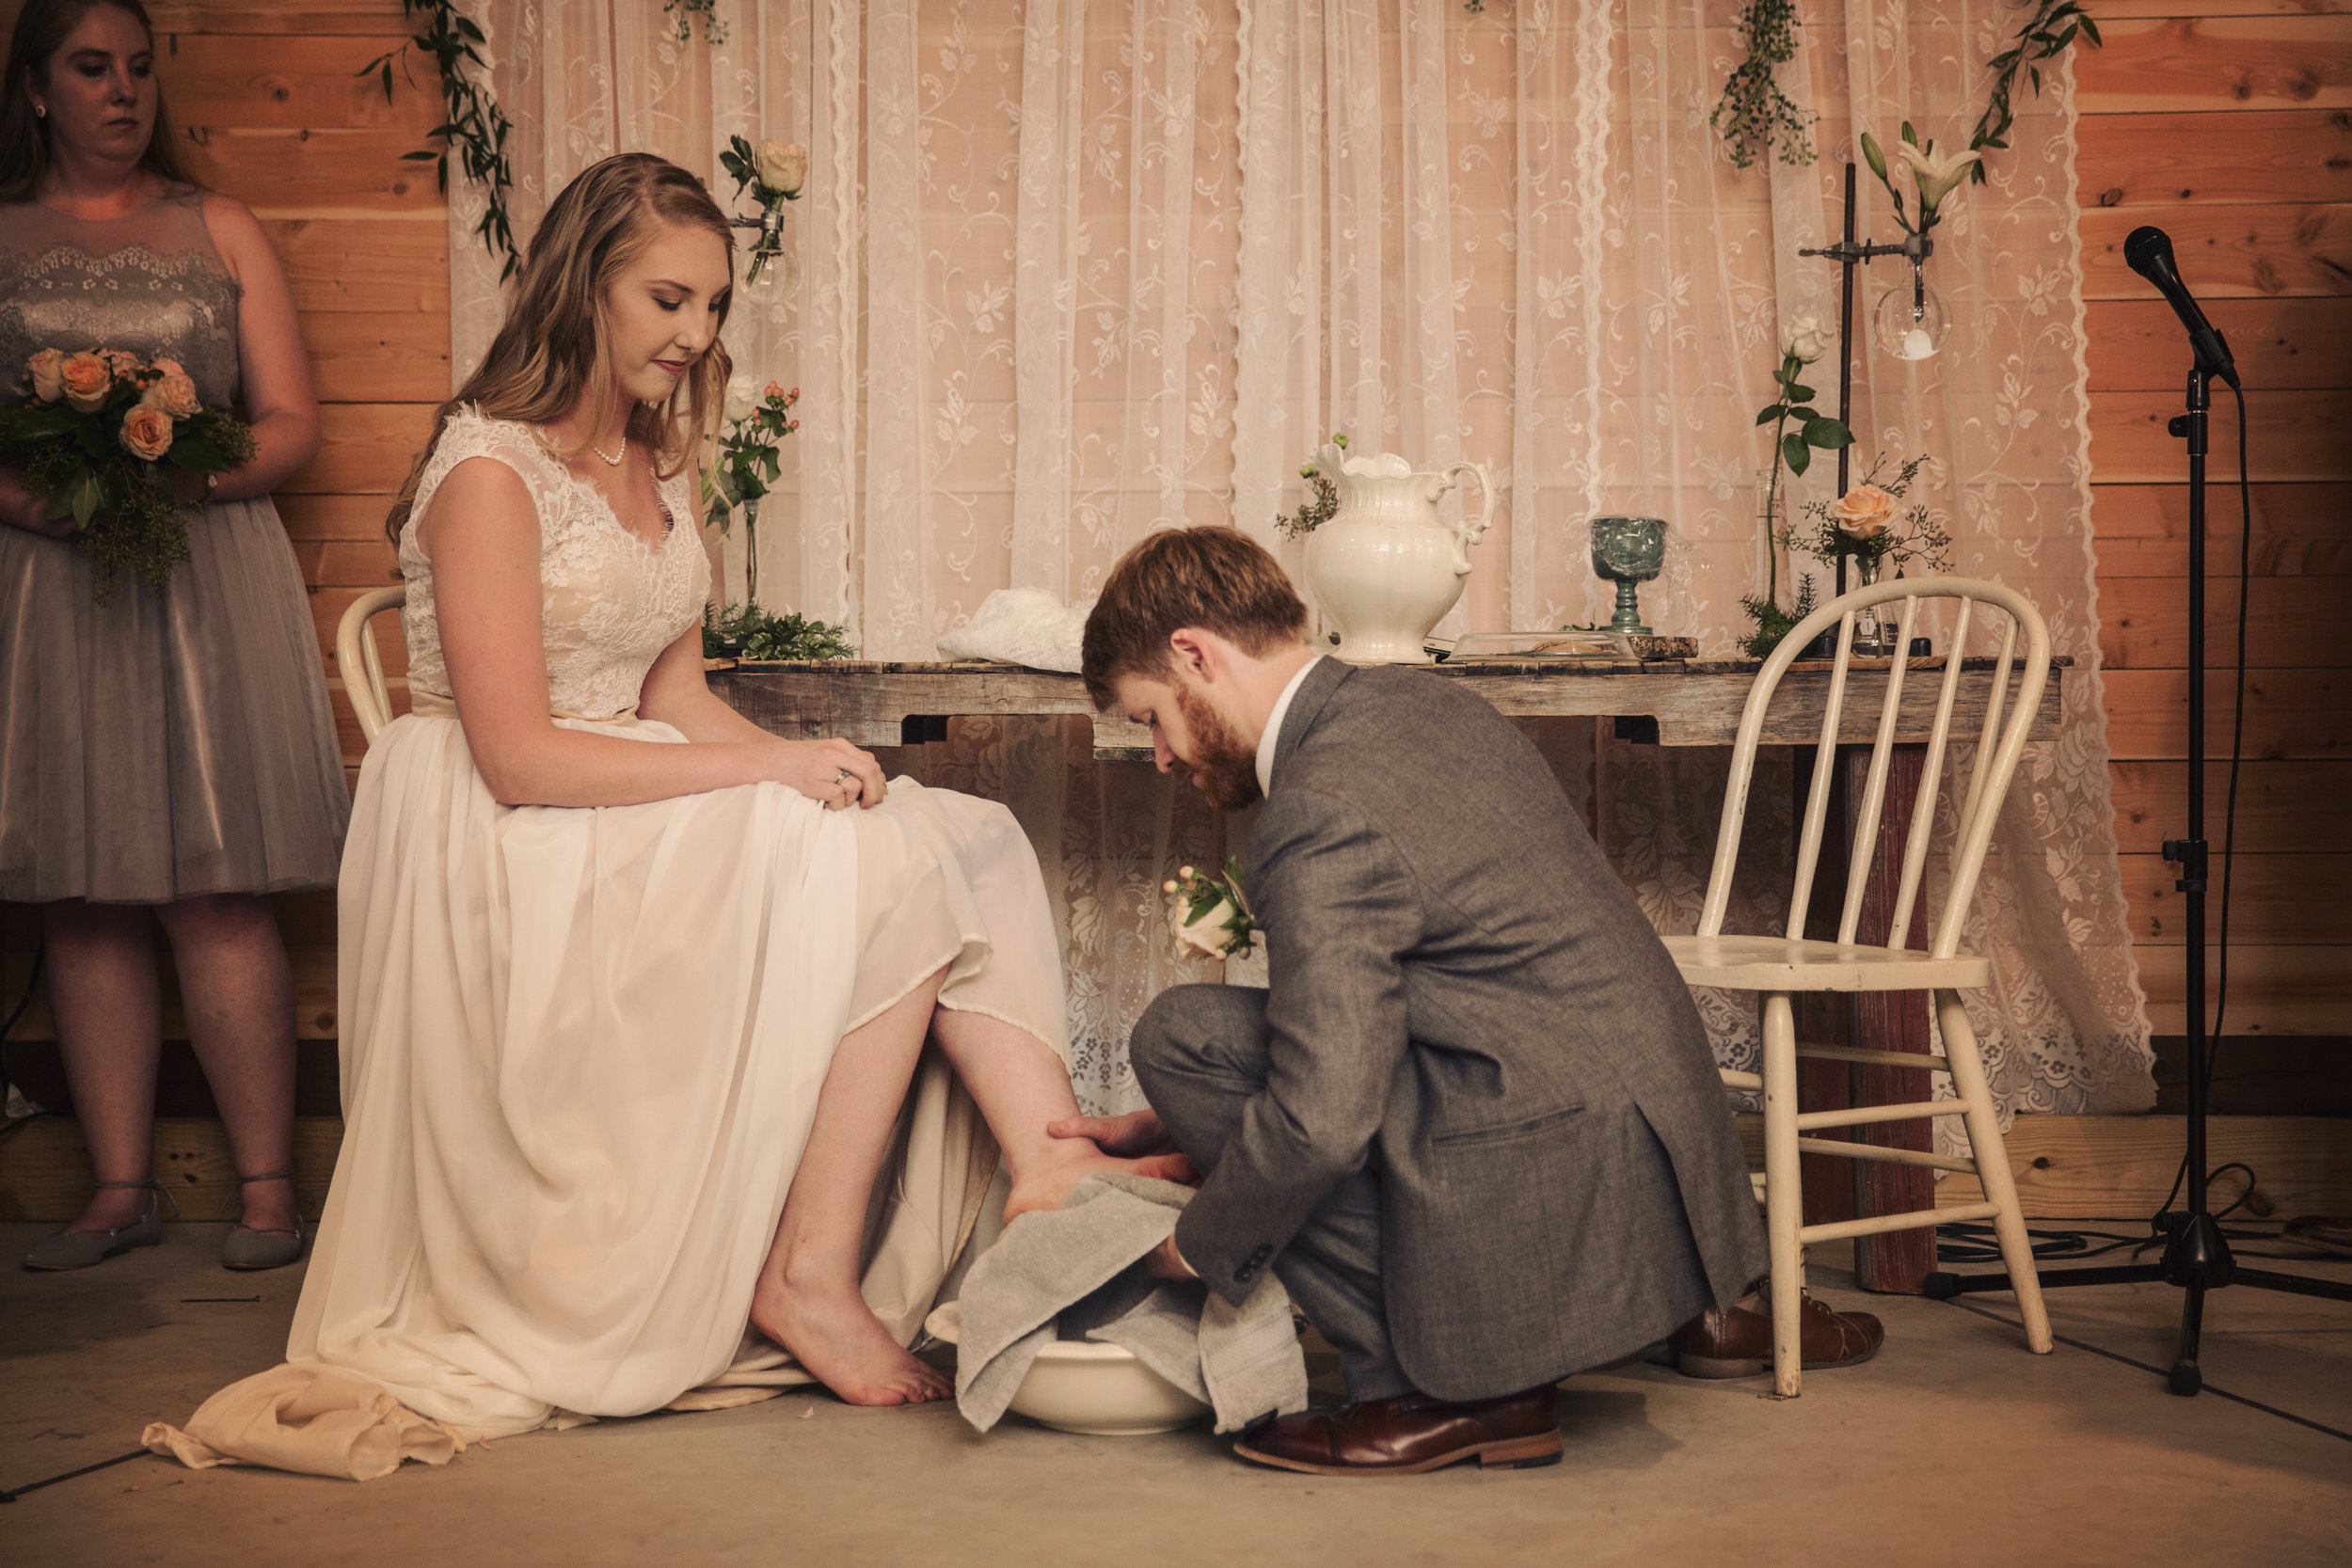 Spencer showed servanthood to his bride by washing her feet.